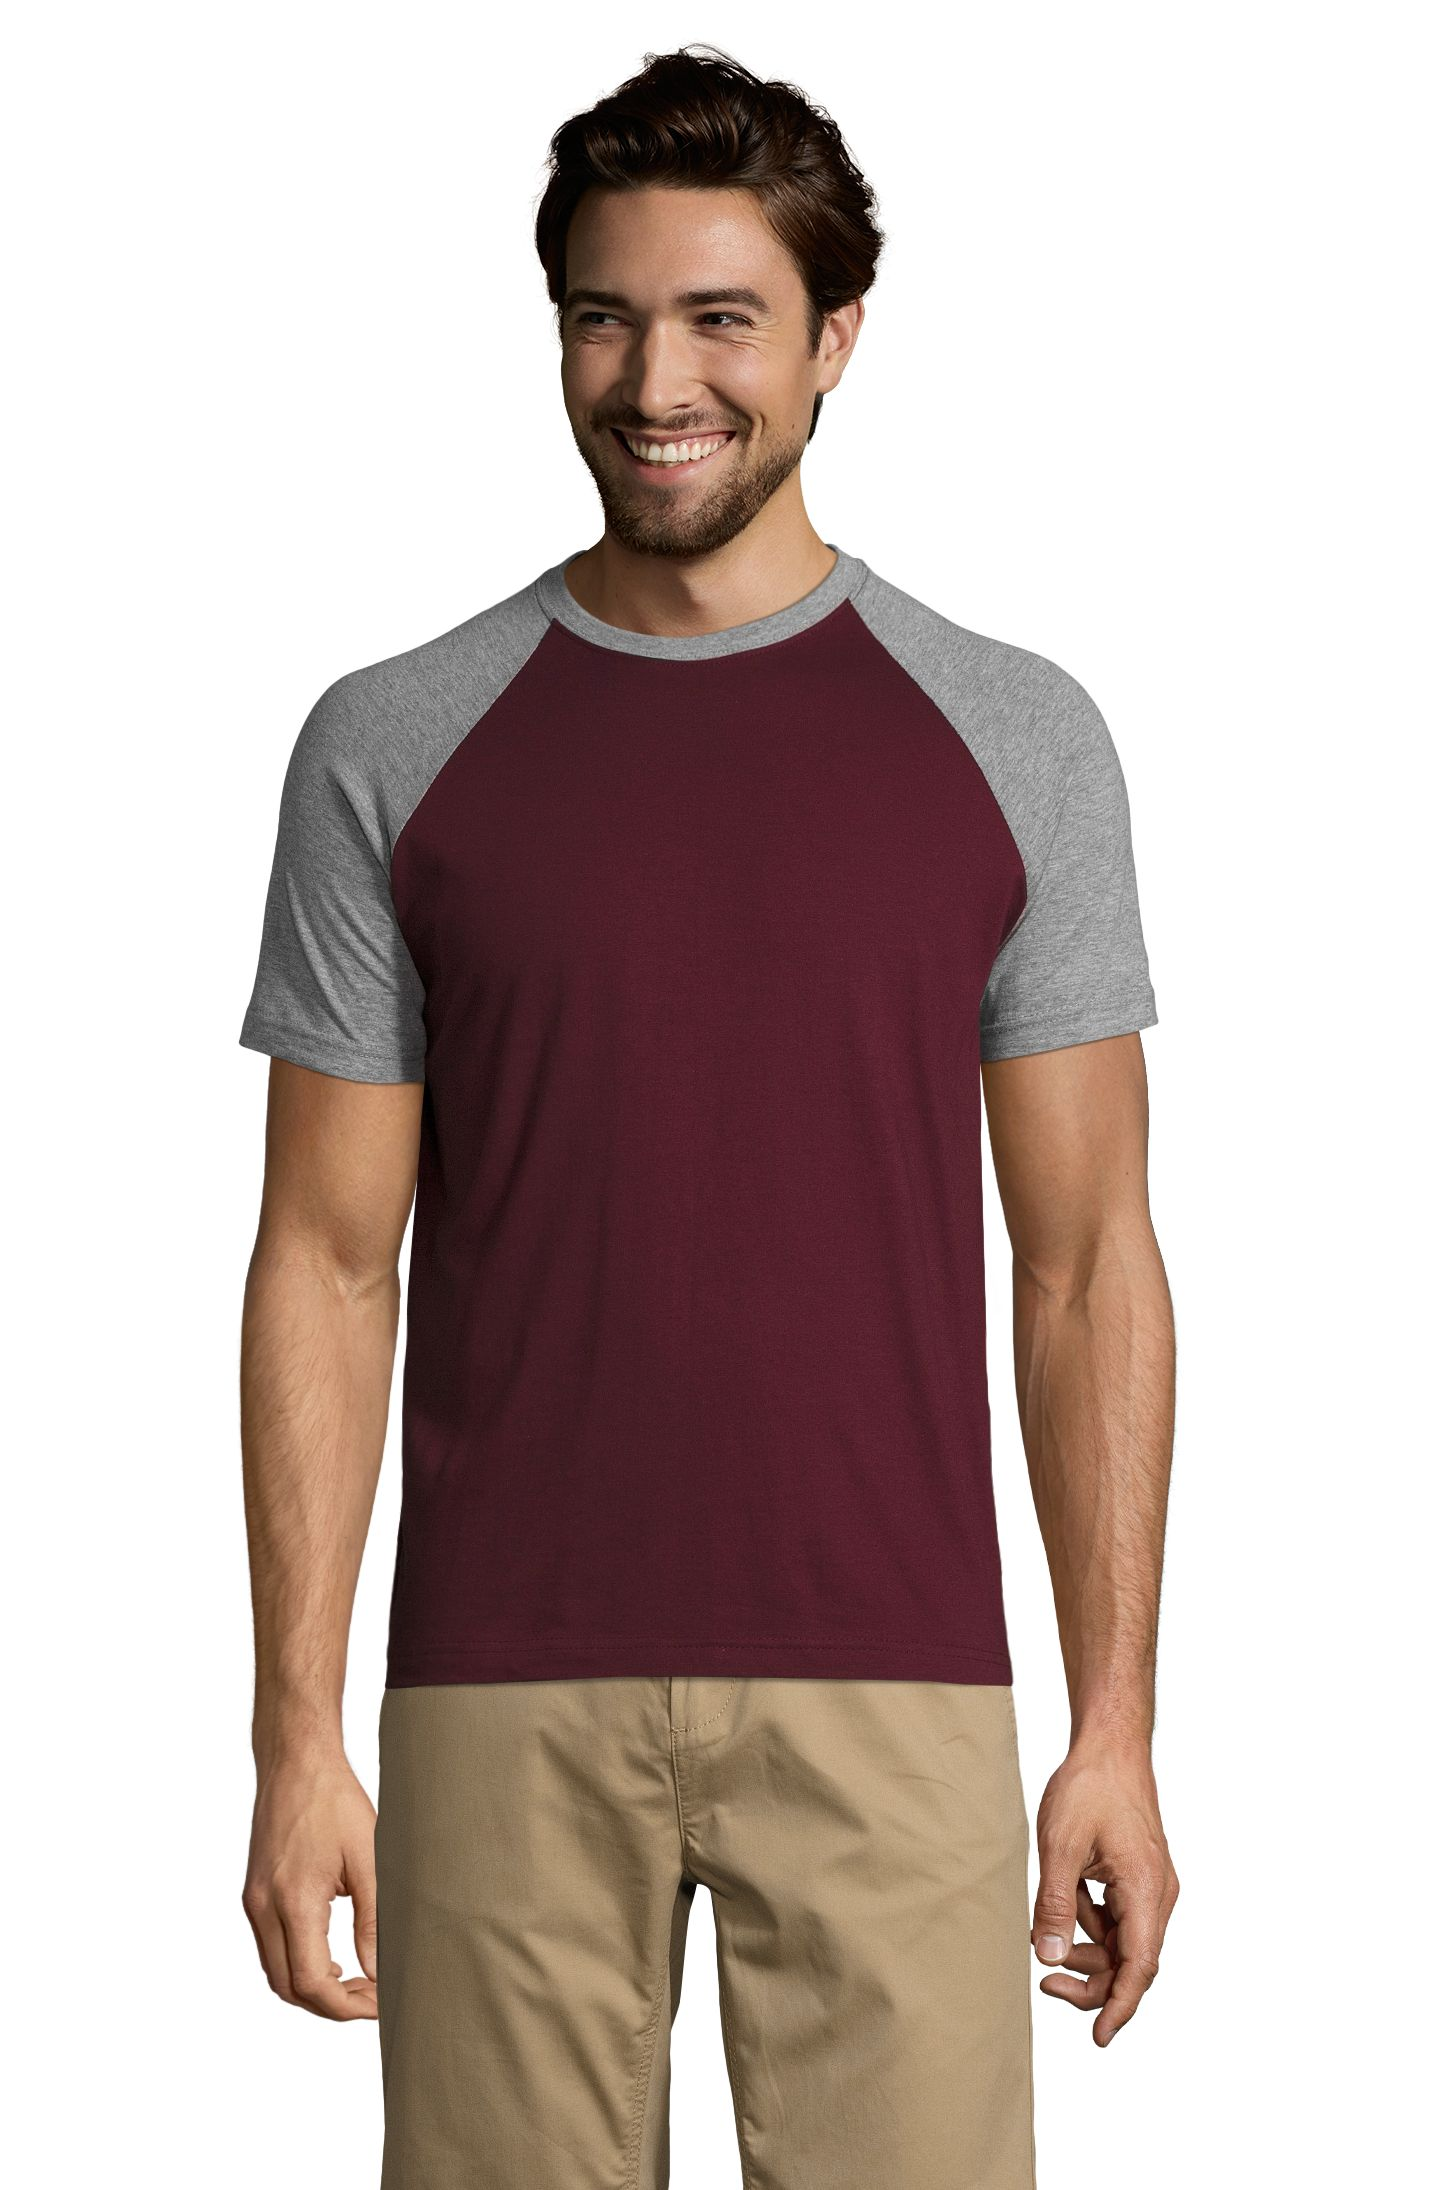 895 - Grey melange / Burgundy